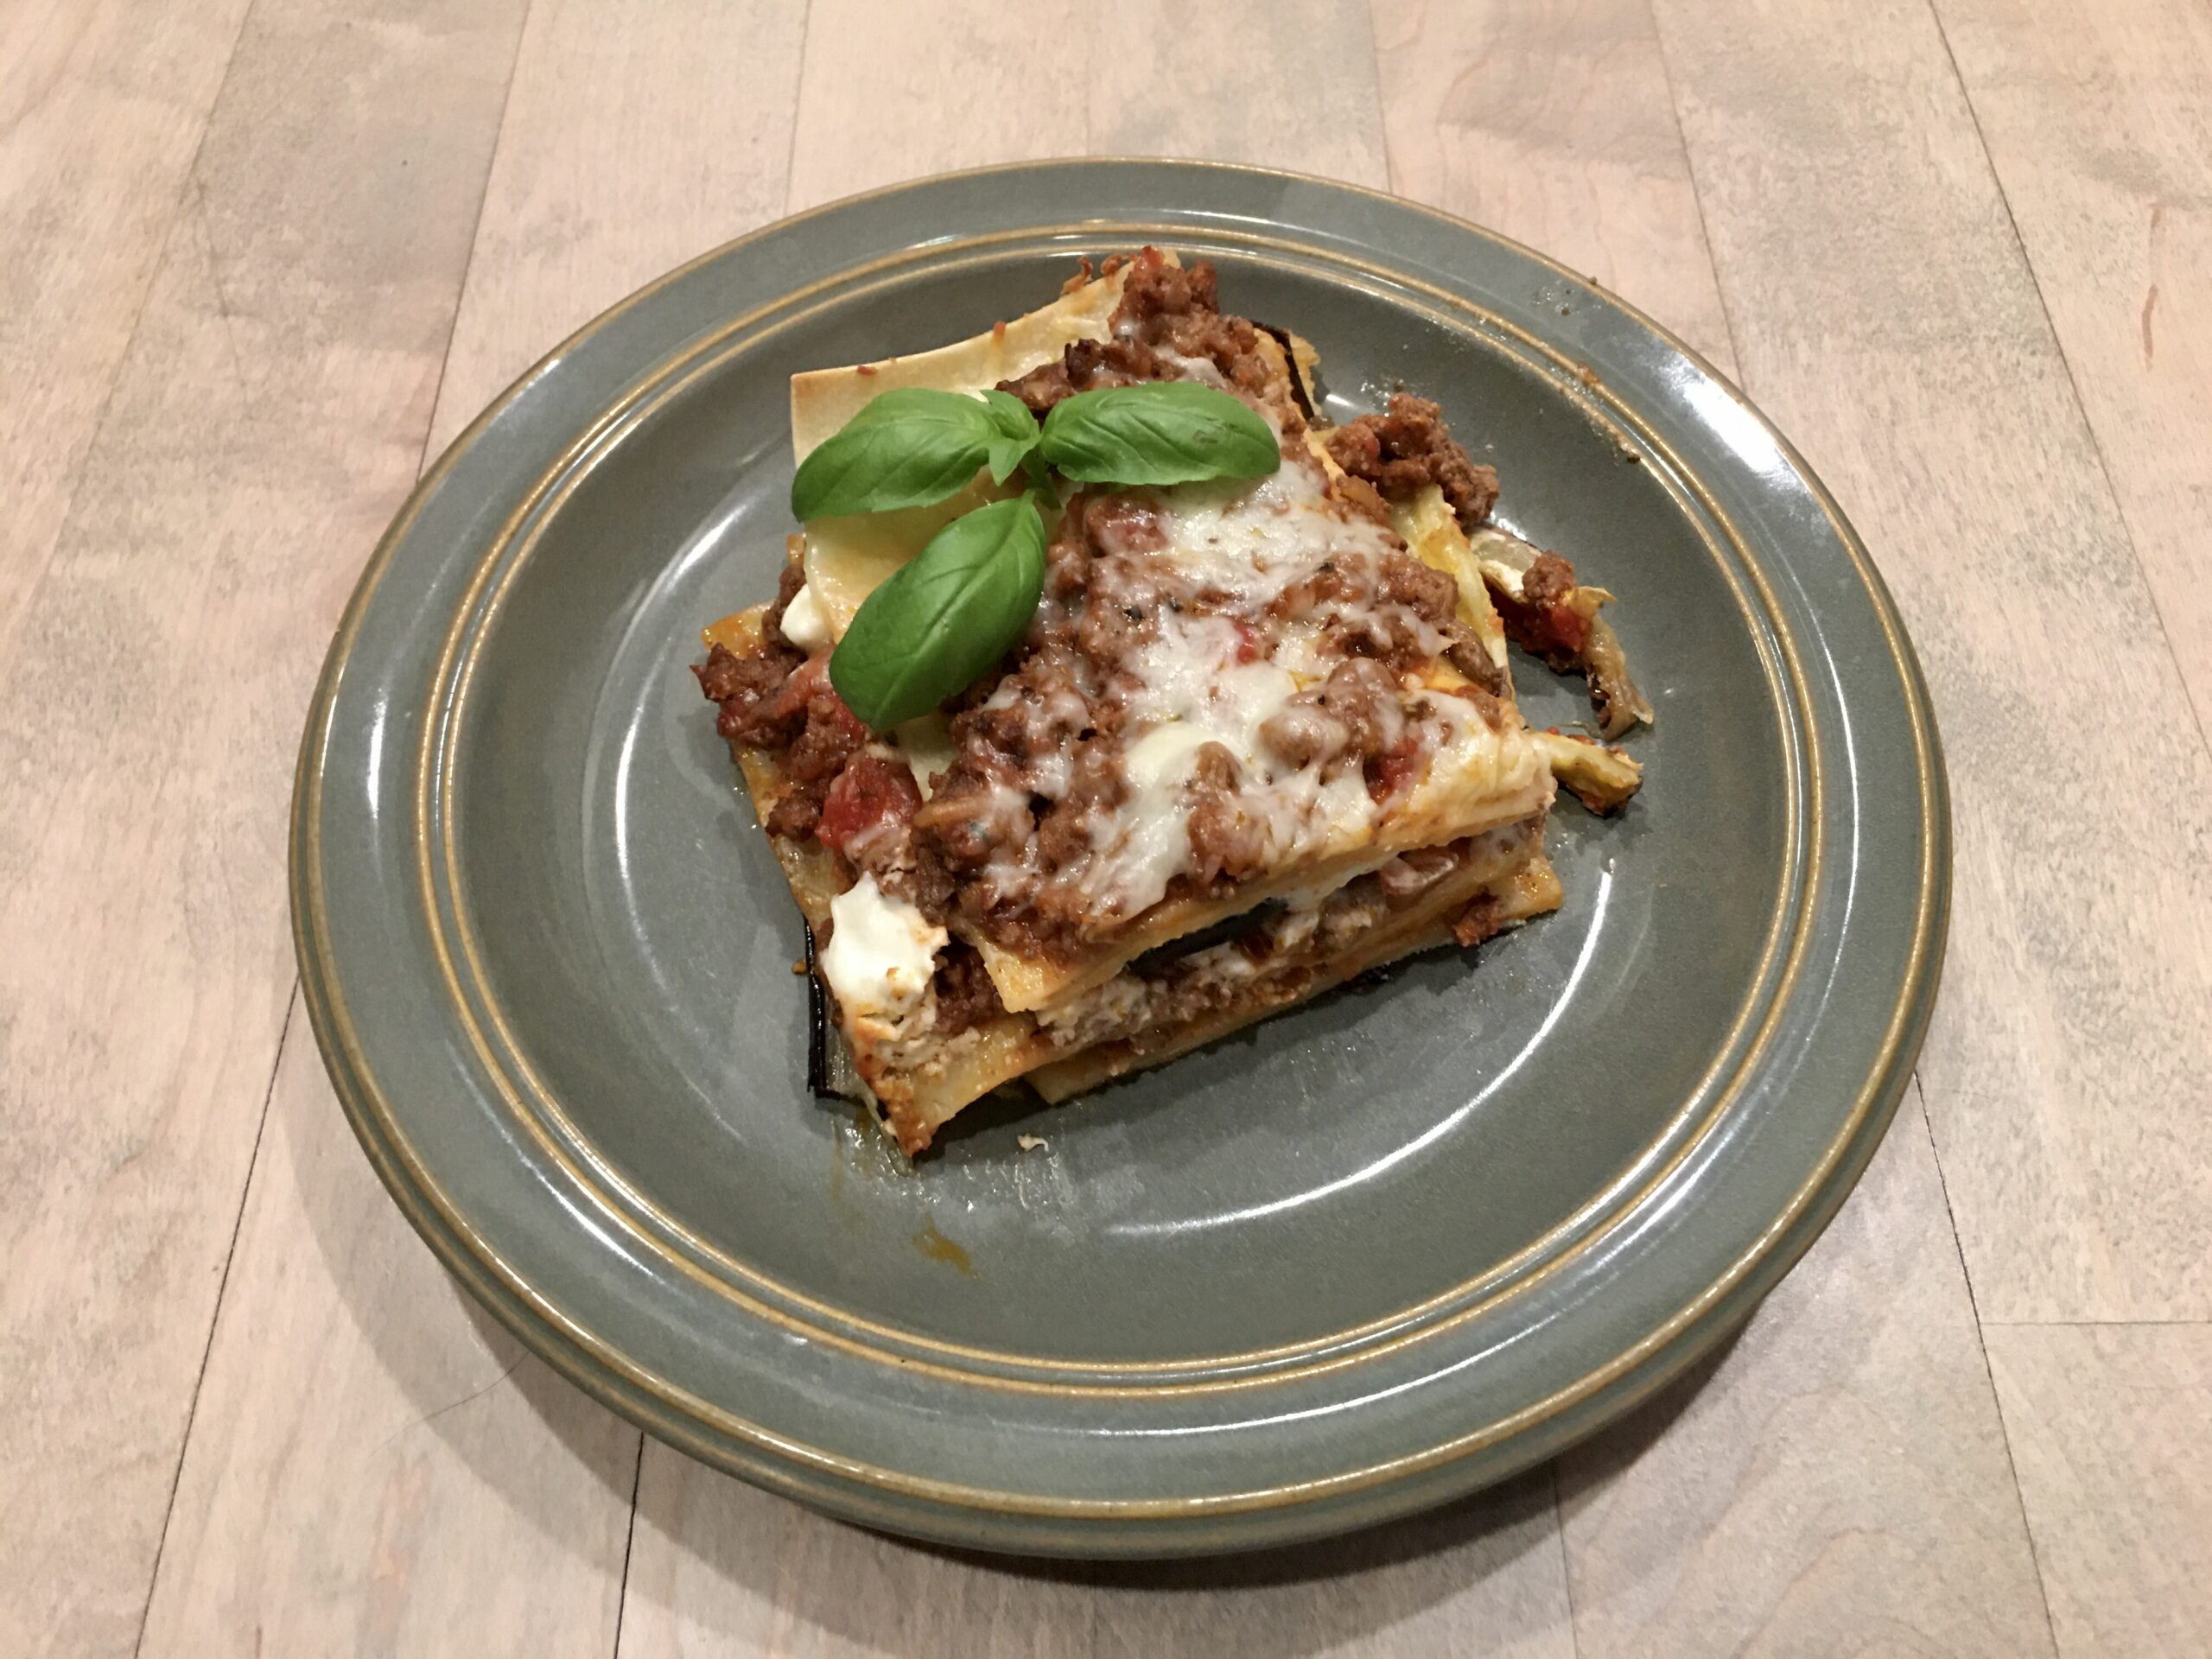 Eggplant Lasagna served on a green plate